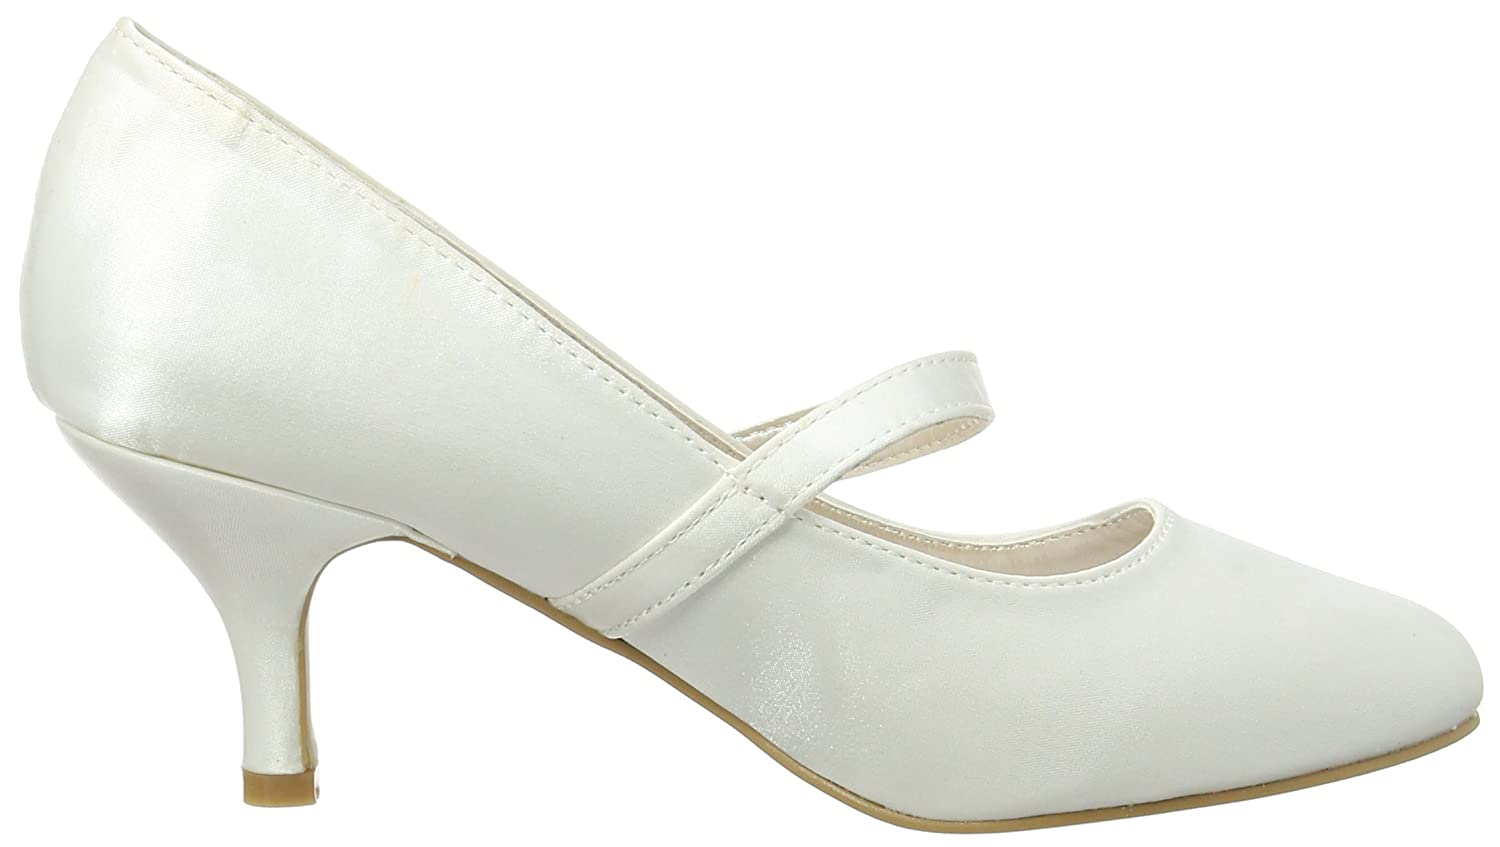 Spot On Anne Michelle Low Heel 'Wedding' Court, Women's Mary Jane:  Amazon.co.uk: Shoes & Bags